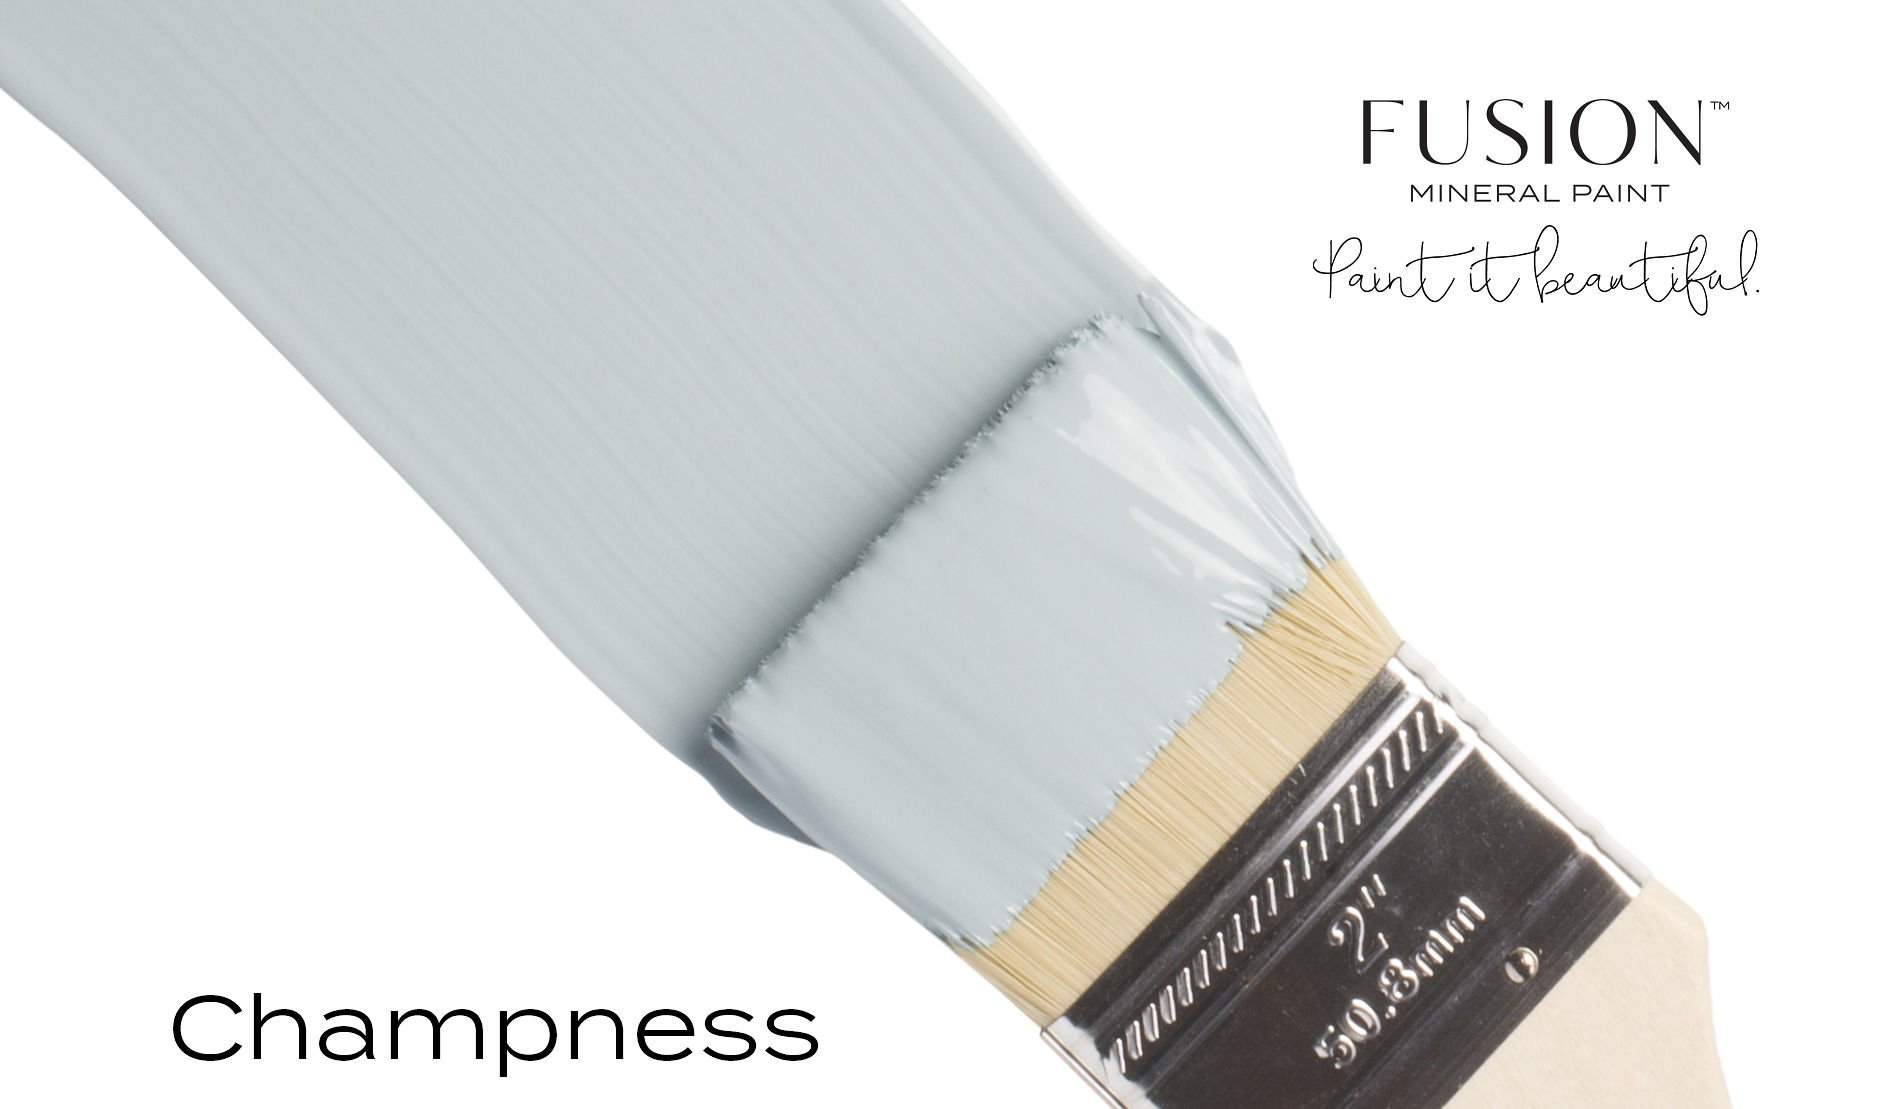 Fusion Mineral Paint Brushstroke - Champness | www.raggedy-bits.com